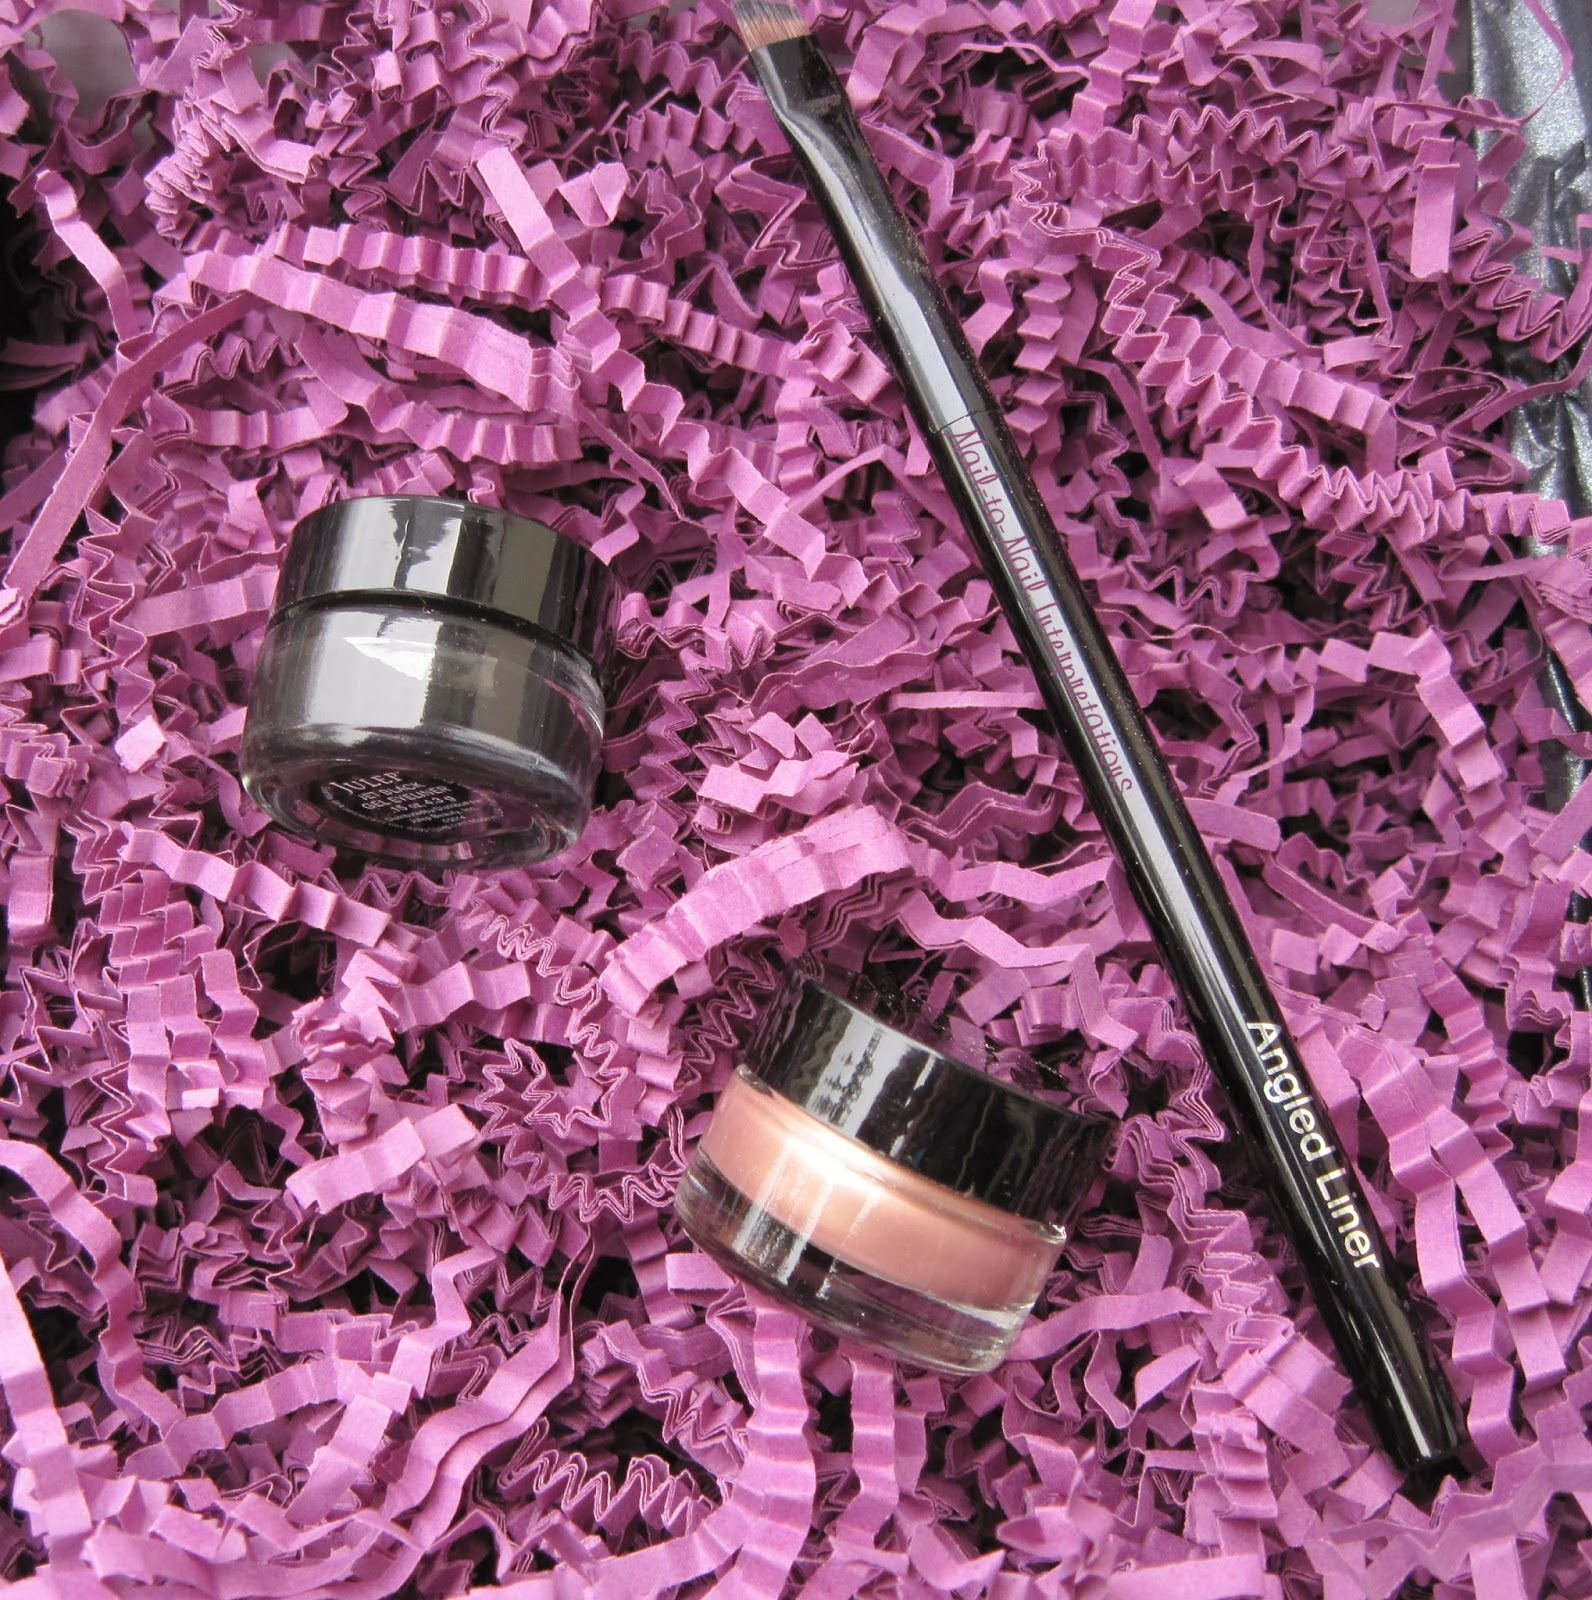 Eye Sheen Liquid Eyeshadow, Ink Gel Eyeliner, and Angled Liner Brush